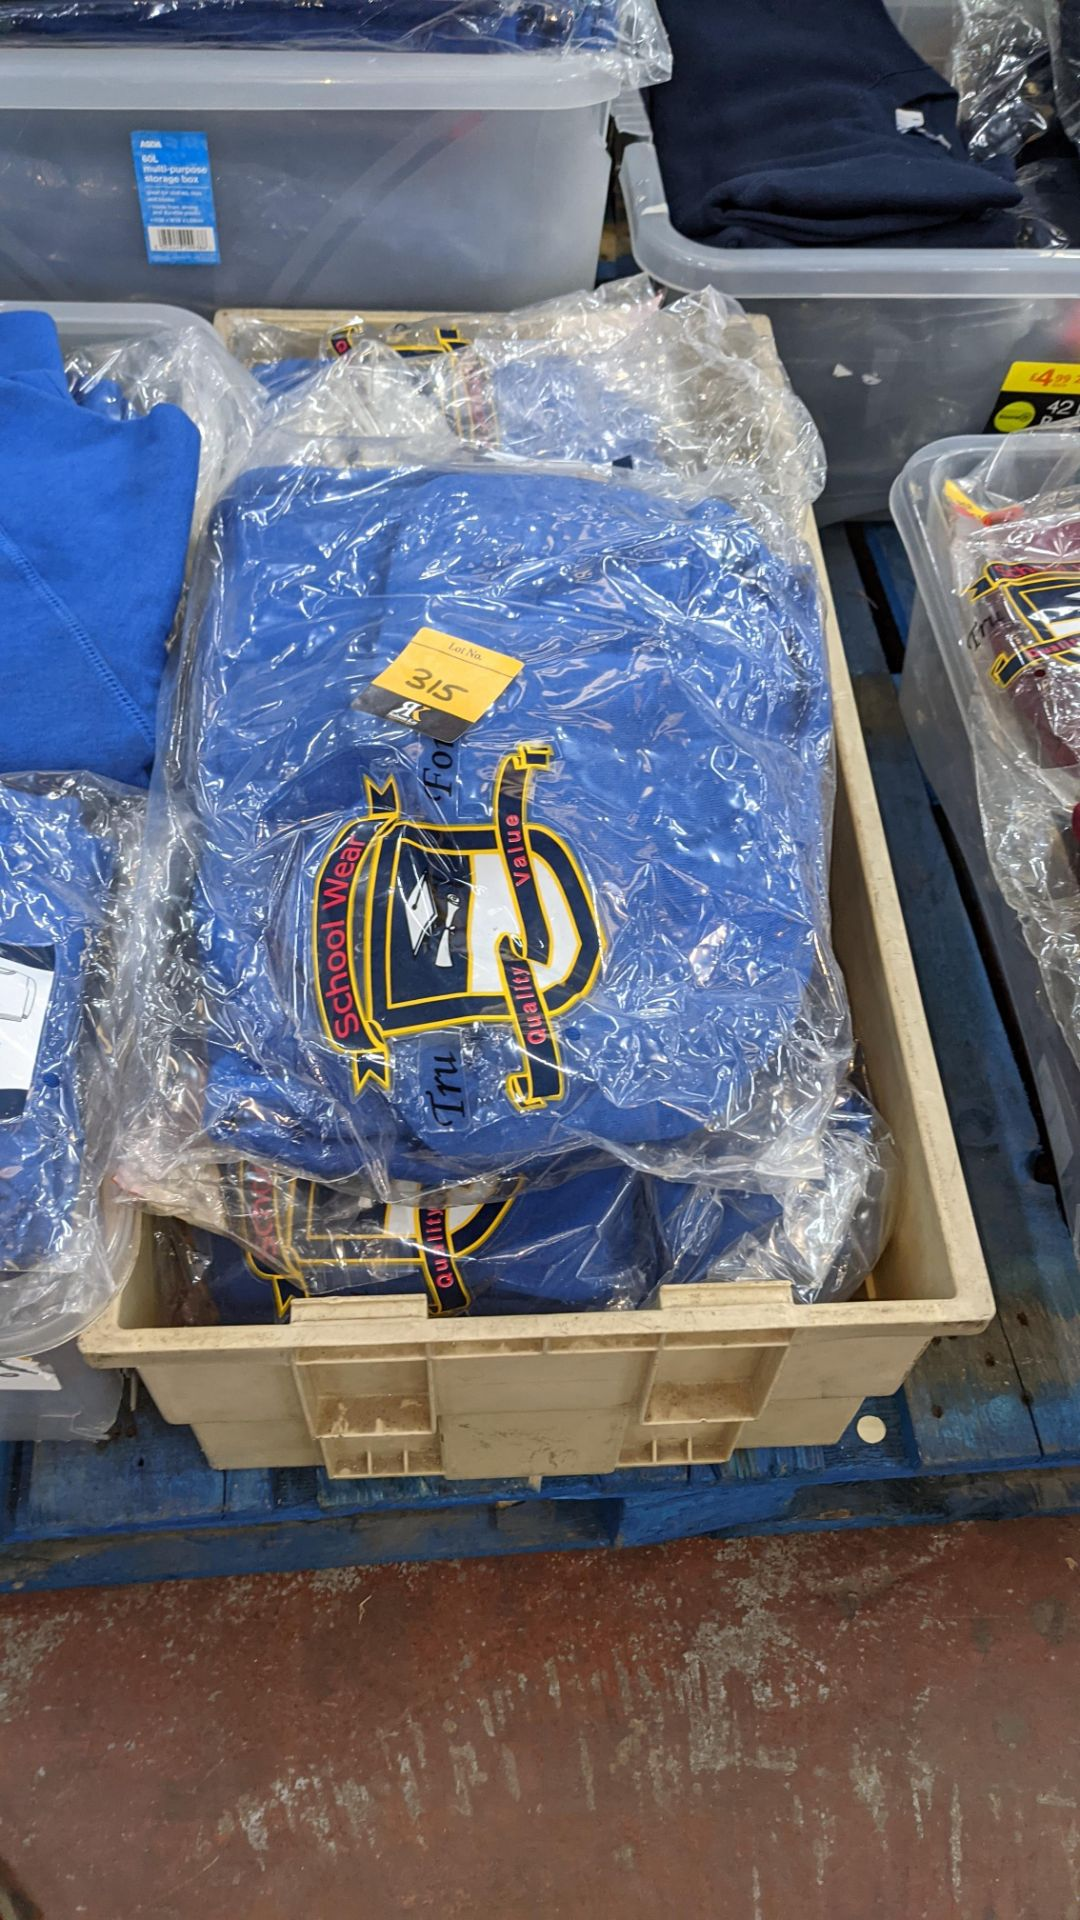 Approx 17 off blue children's sweatshirts & similar - the contents of 1 crate. NB crate excluded